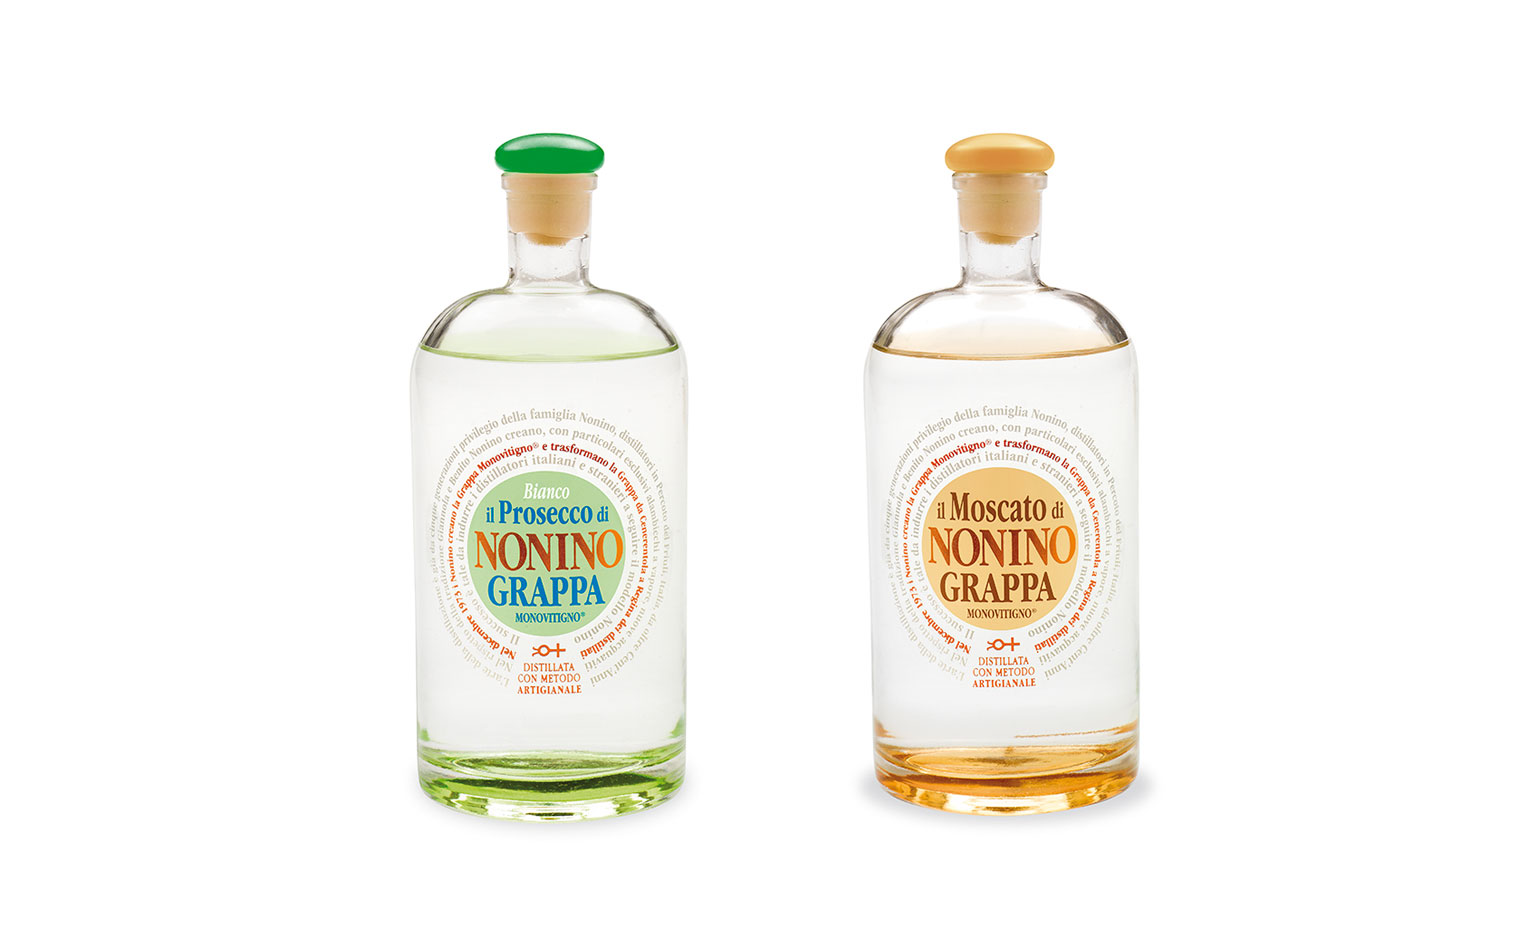 Grappa - what it is How to drink this alcoholic drink 59